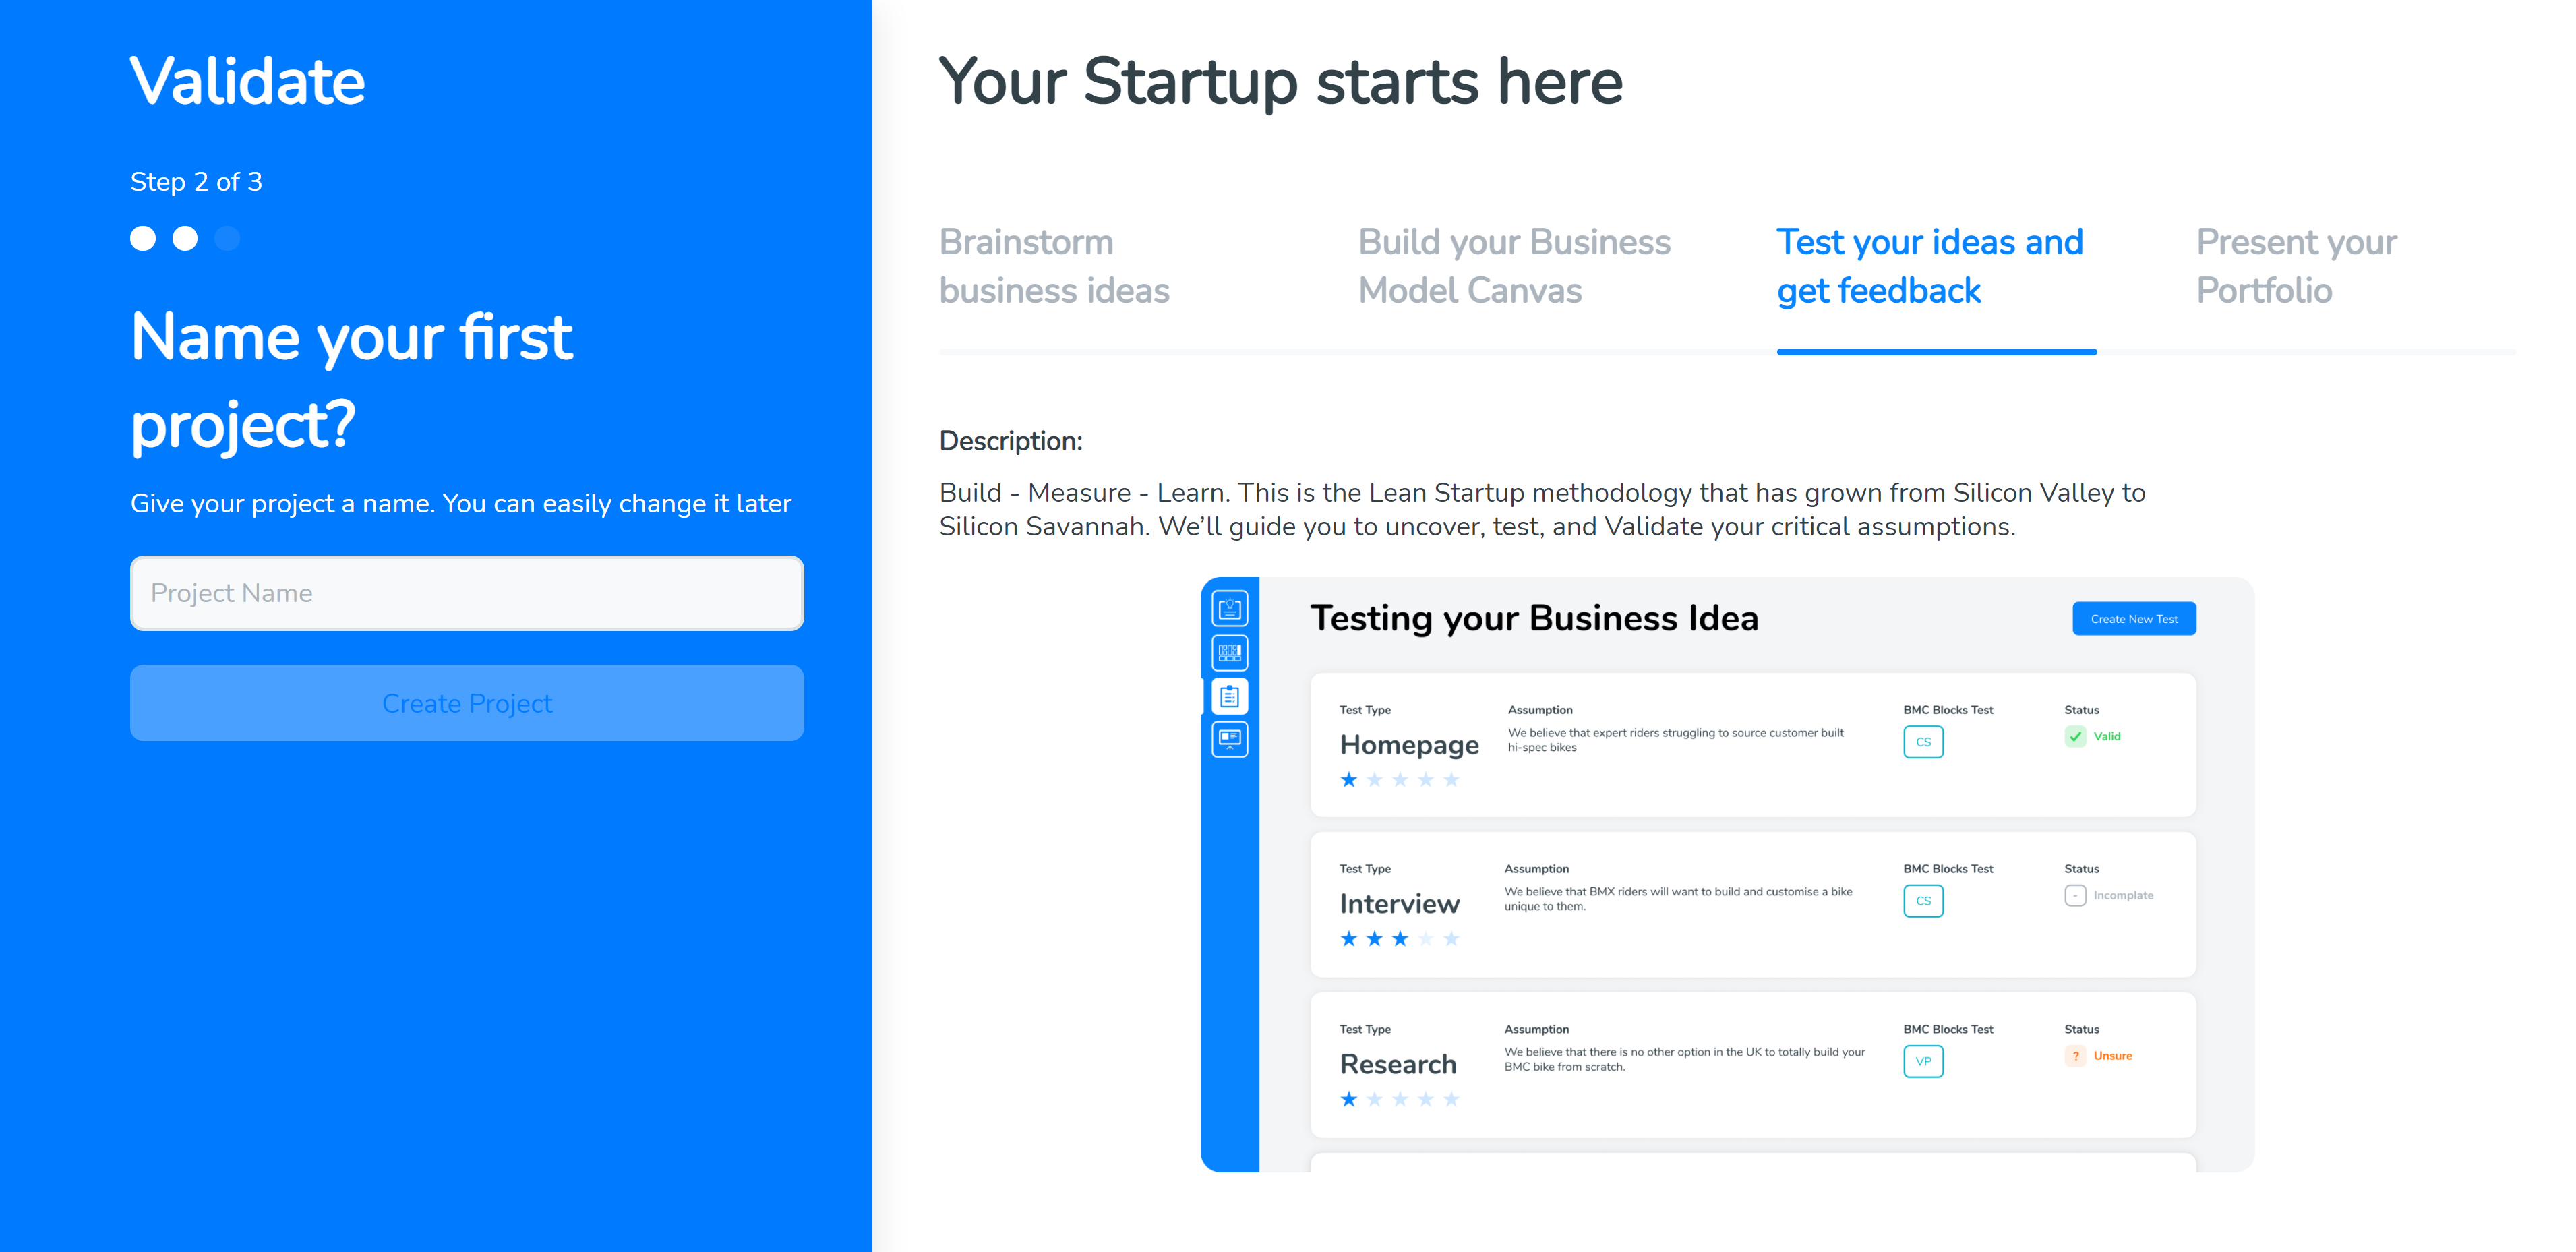 Your Startup starts here. Name your first business idea on SimVenture Validate.